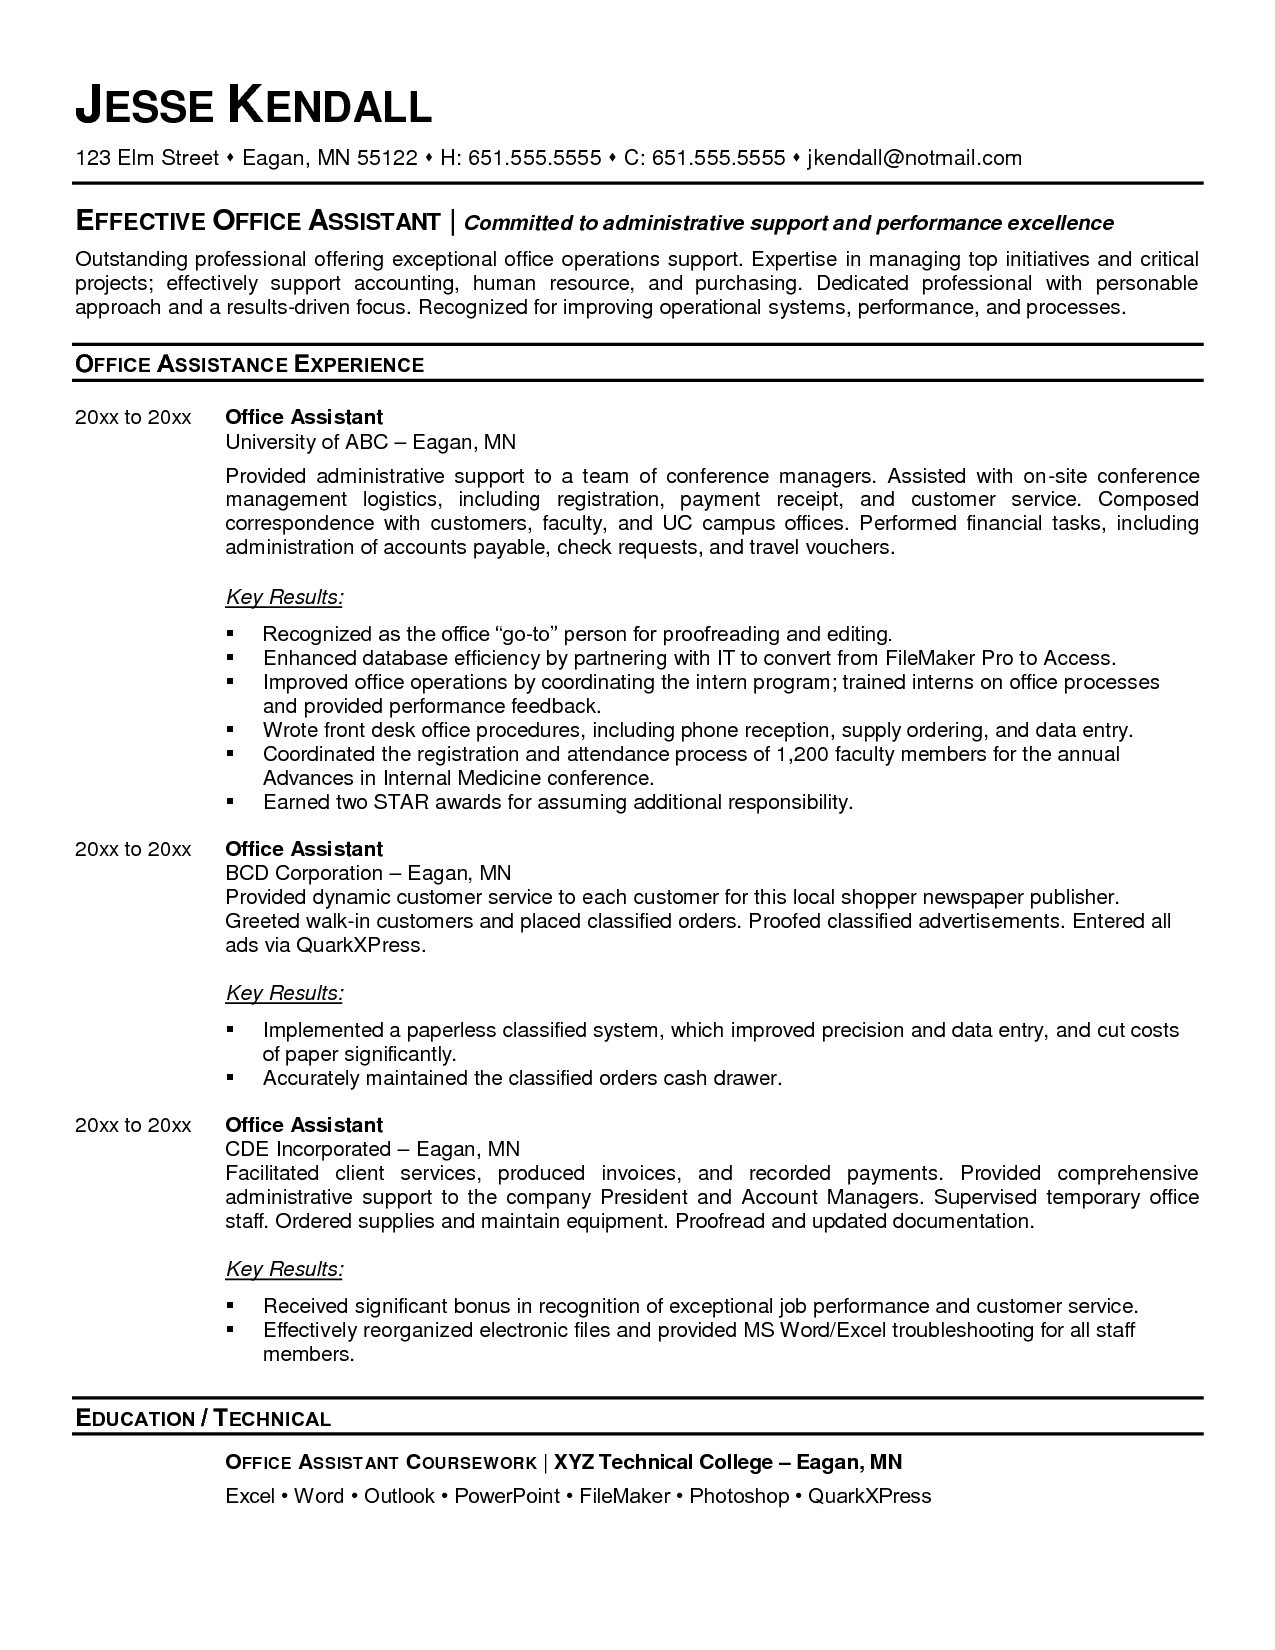 resume for medical office manager Collection-Medical fice Manager Resume Examples New Medical Fice Assistant Resume Sample Beautiful 10 Sample Resume 19-h